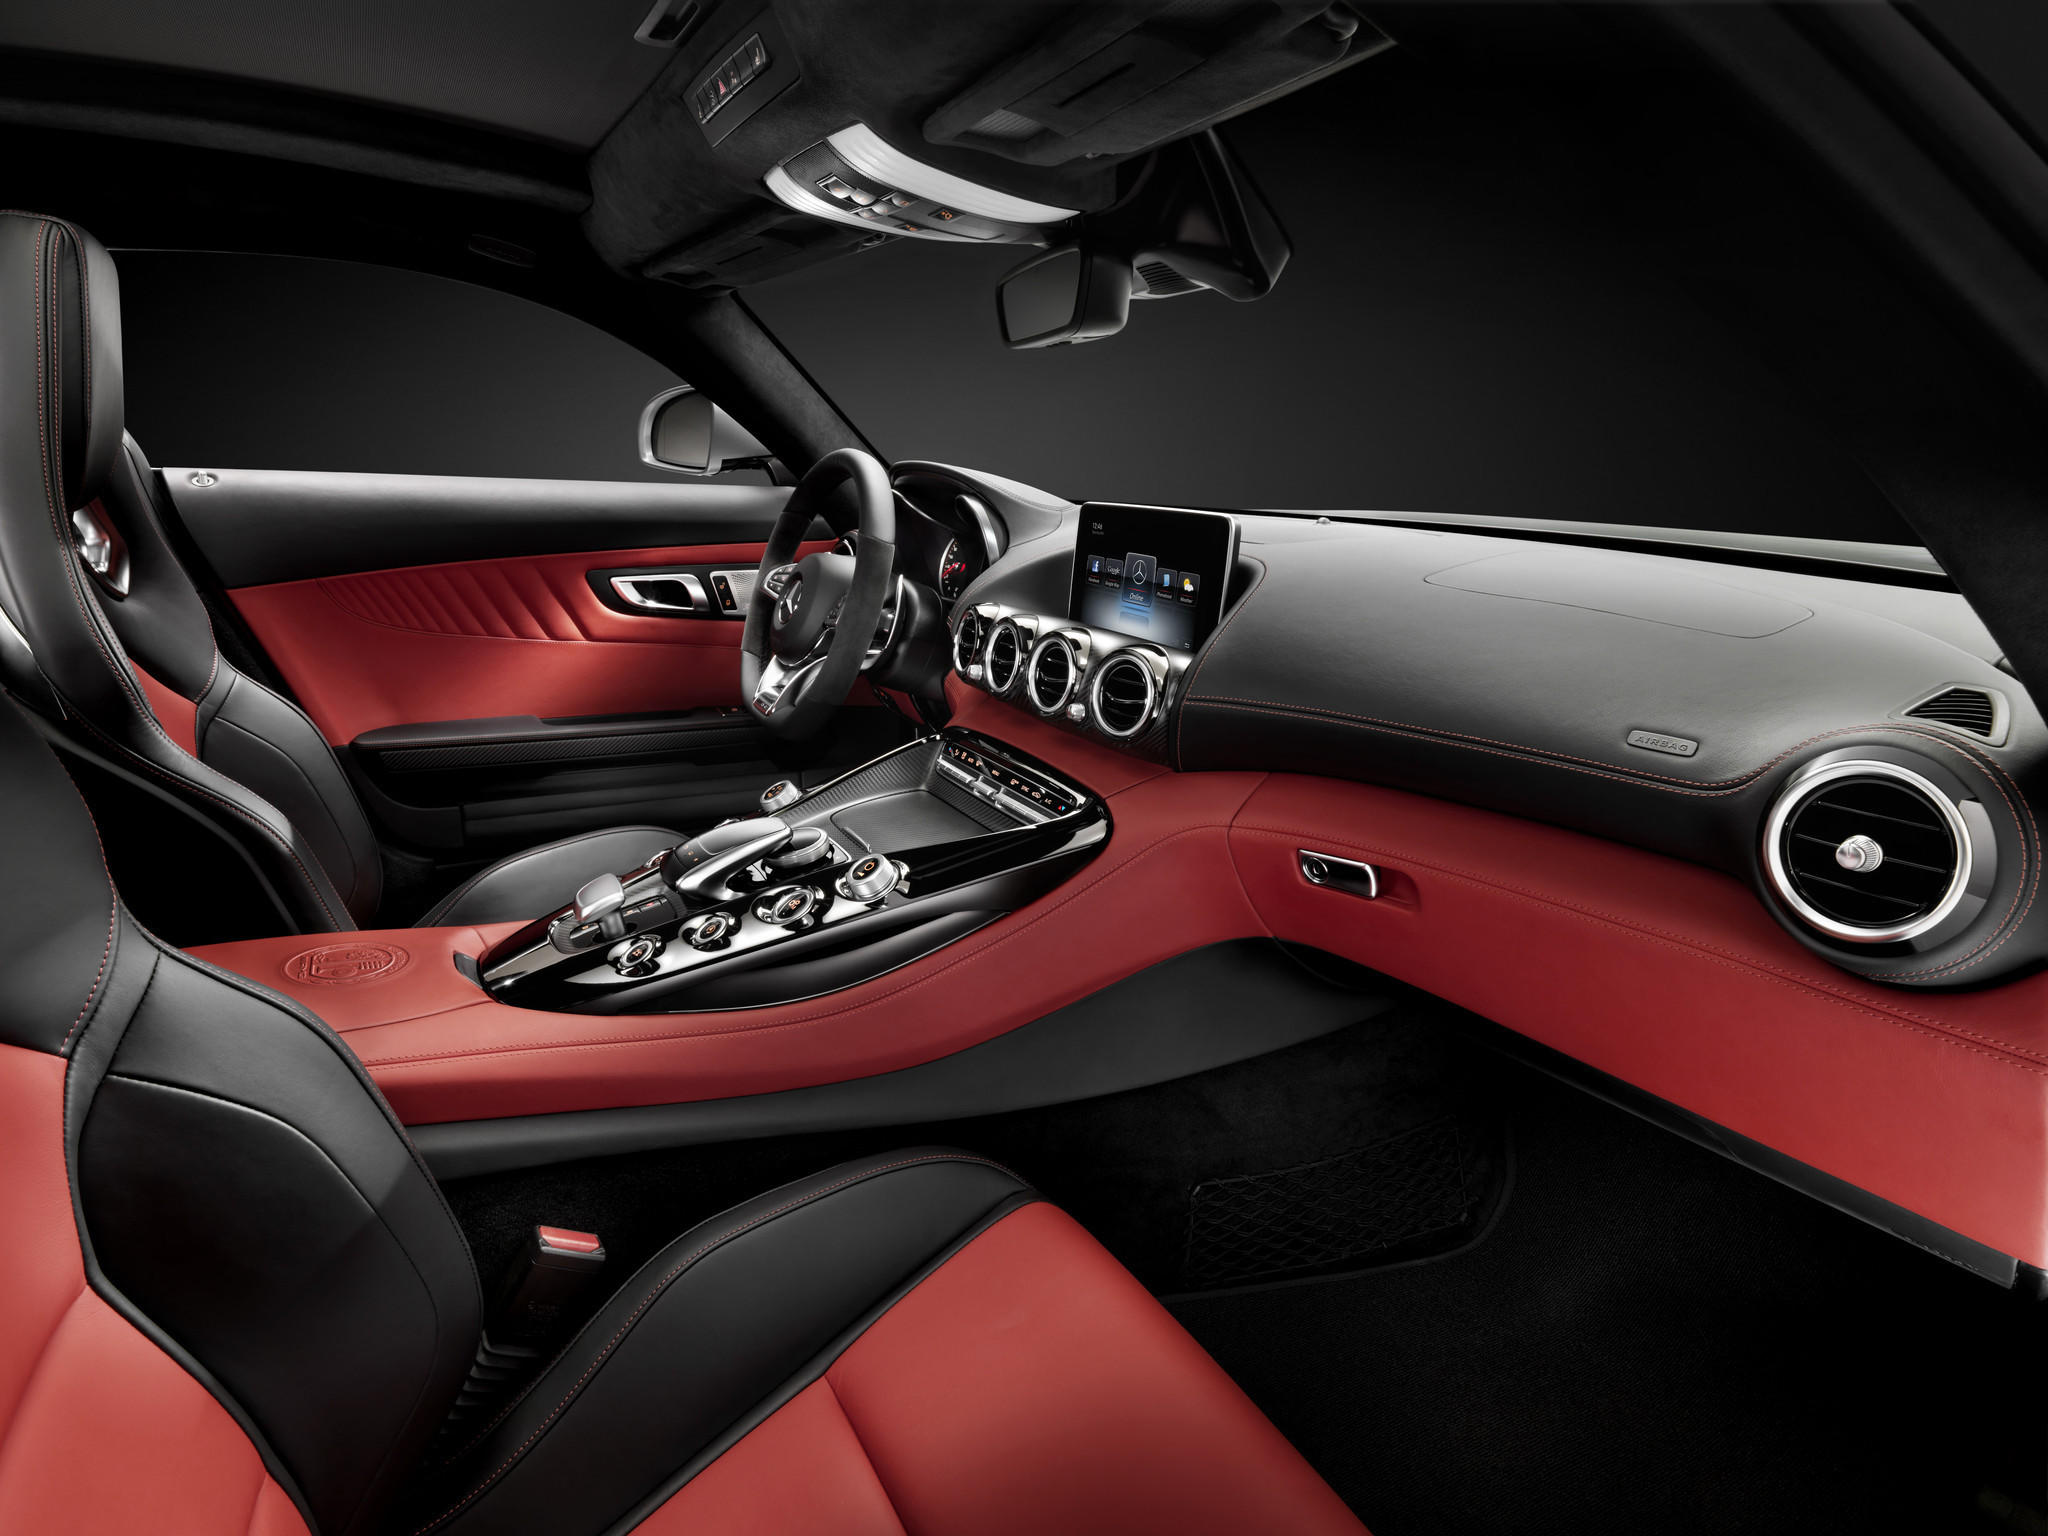 Mercedes confirmed Tuesday night it is building an all-new sports car, dubbed the AMG GT. The V-8 coupe will be smaller and cheaper than the outgoing SLS AMG, and will probably debut around the Paris Motor Show in October.